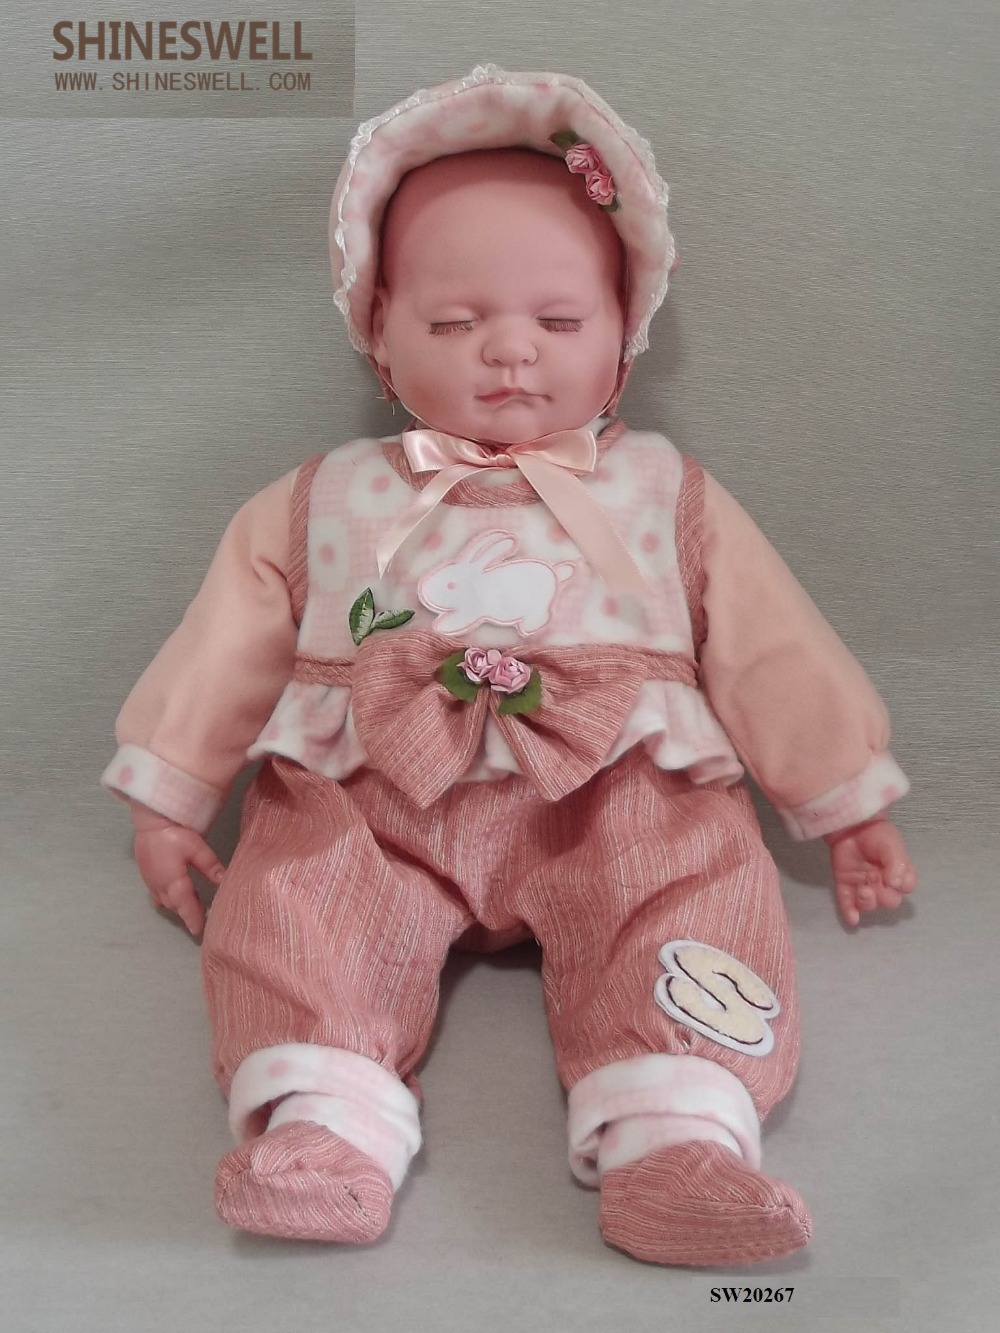 FREE SHIPPING dolls Reborn 51CM/20 INCH WITH MANUFACTUR PRICE HOT SALE AMERCIAN DOLL Ddung doll(China (Mainland))